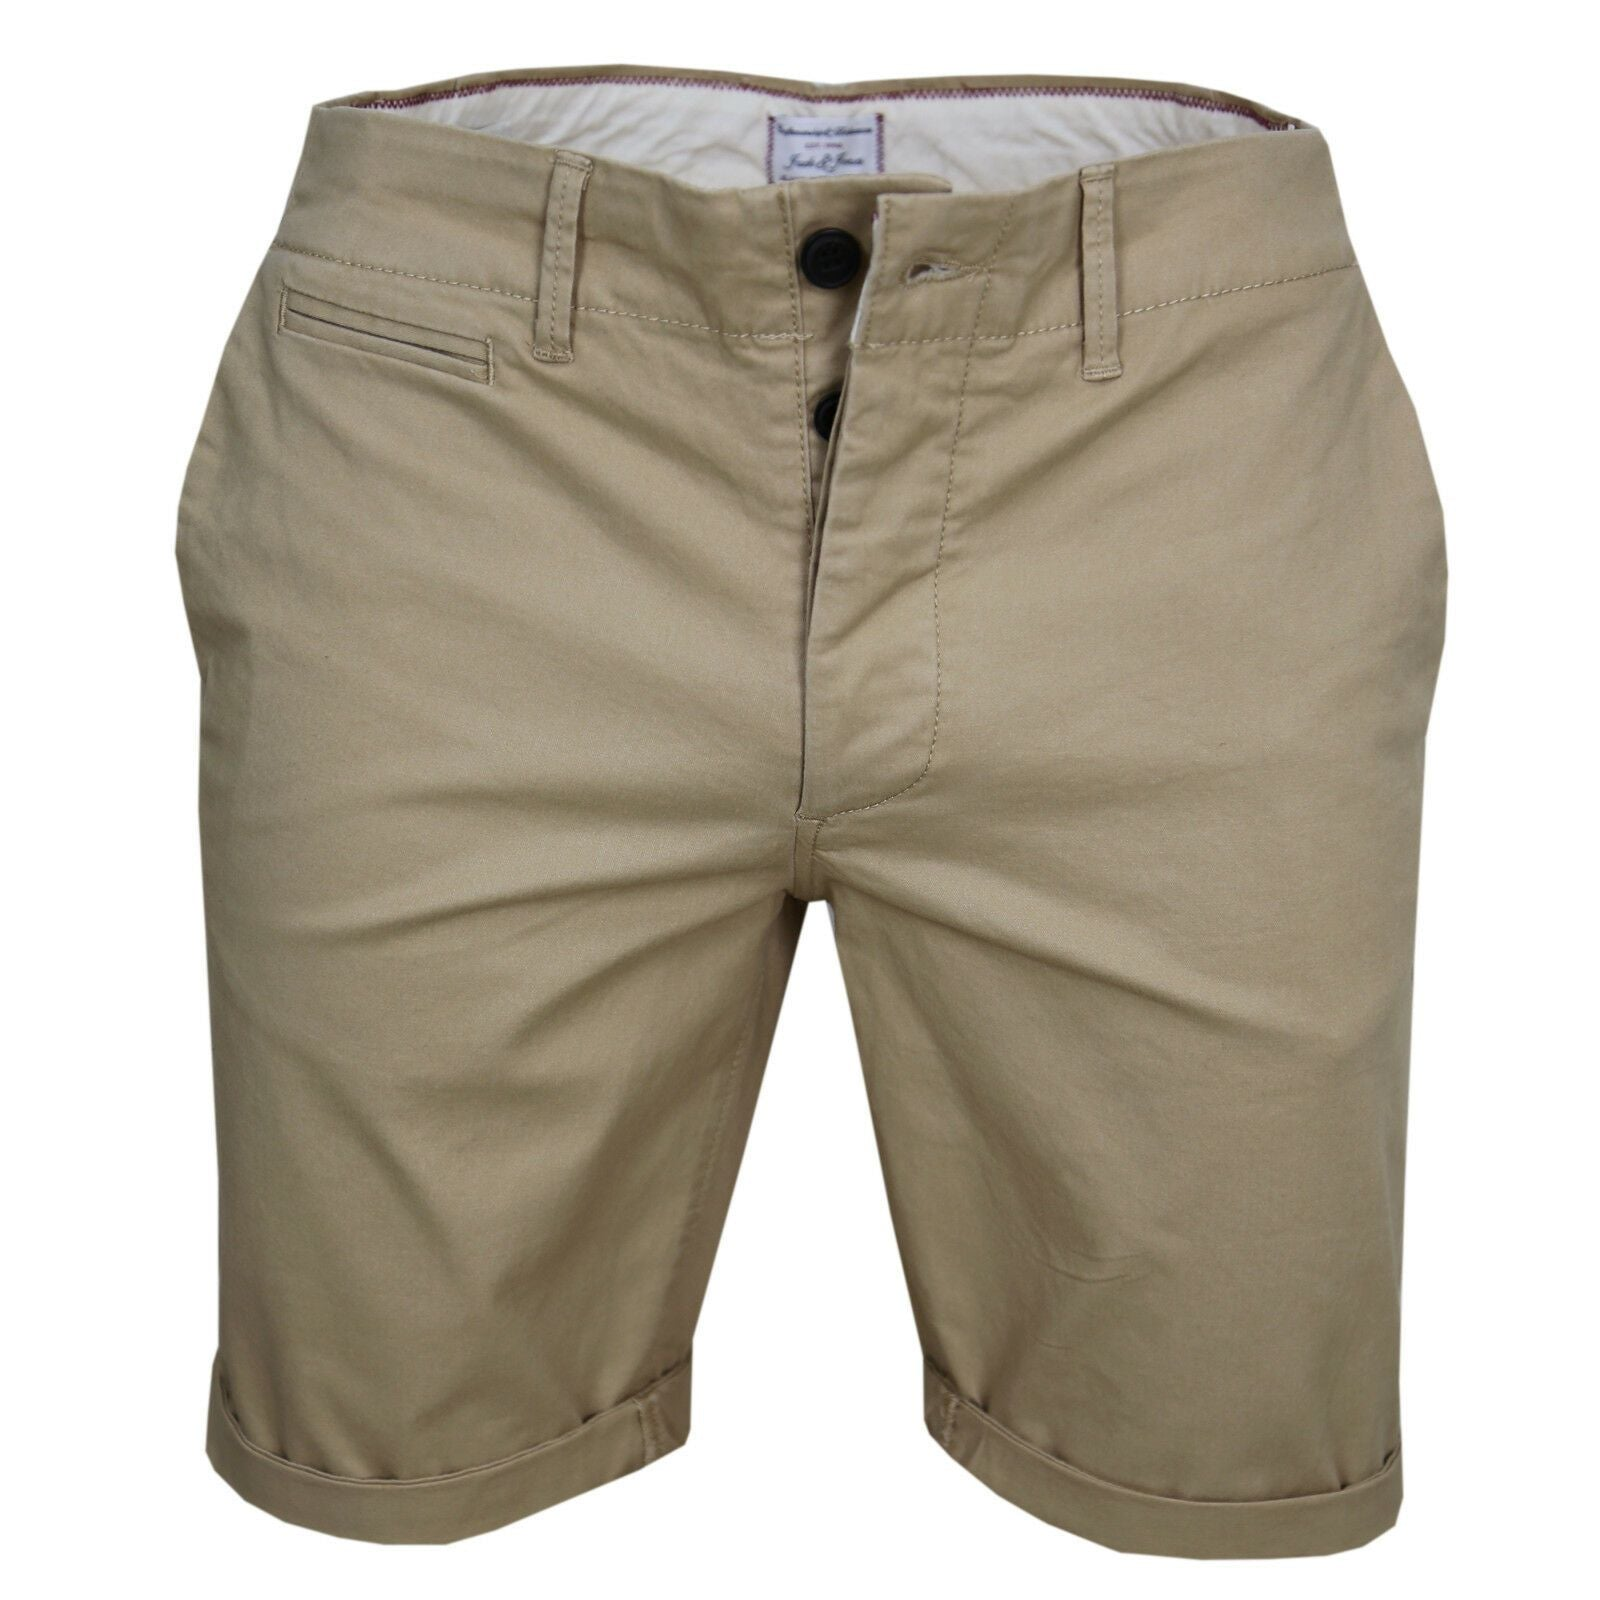 Jack & Jones Herren Chino Shorts Chinohose Chinos Bermudas Farb Mix Neu - Jack & Jones